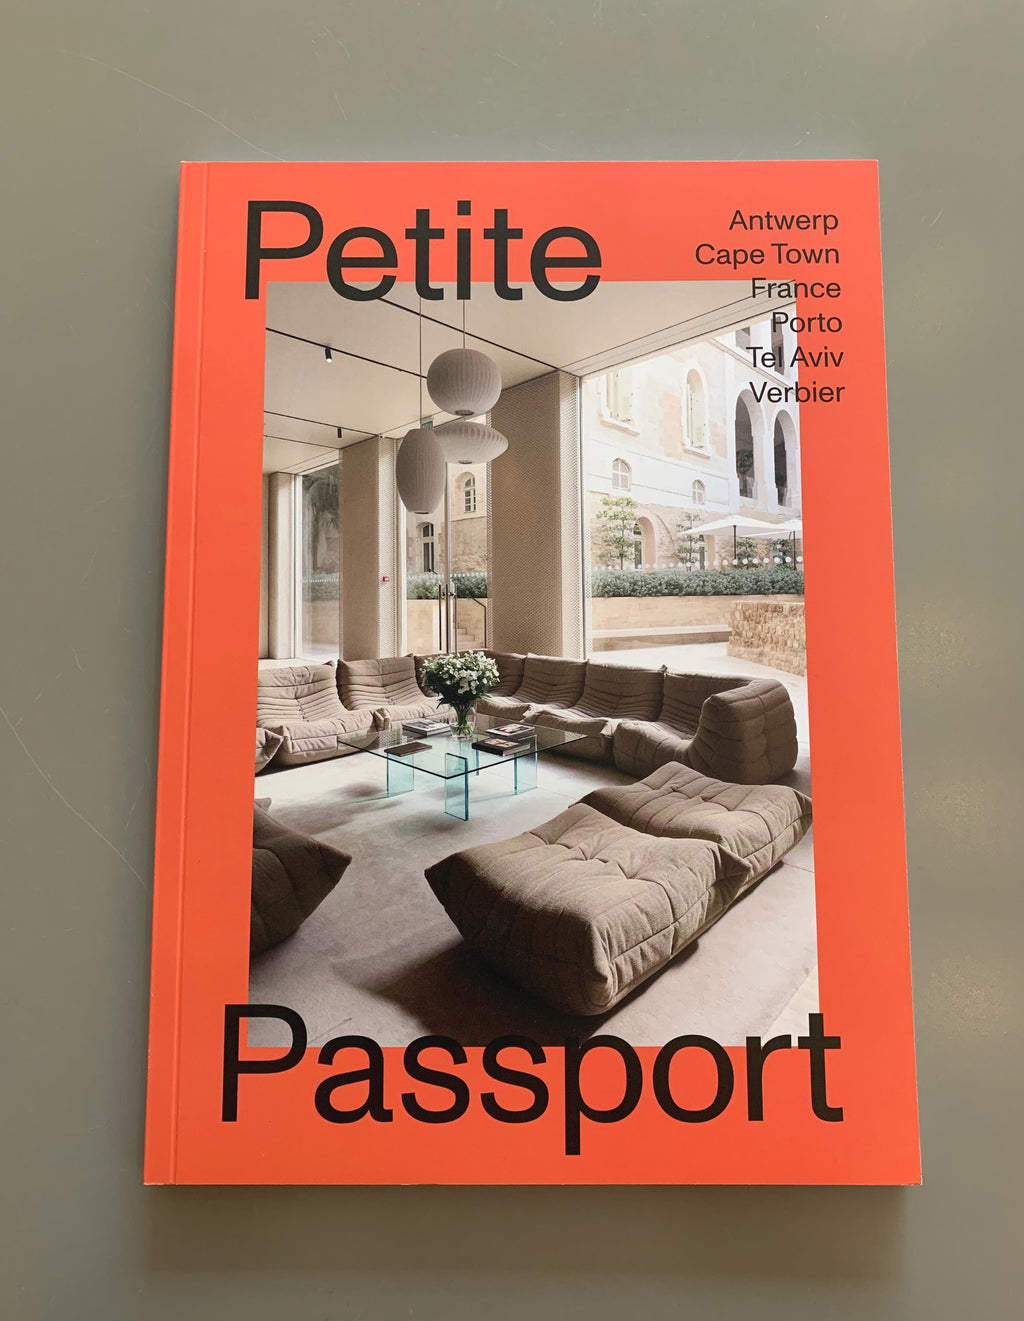 Petite Passport // Travel Magazin no. 1